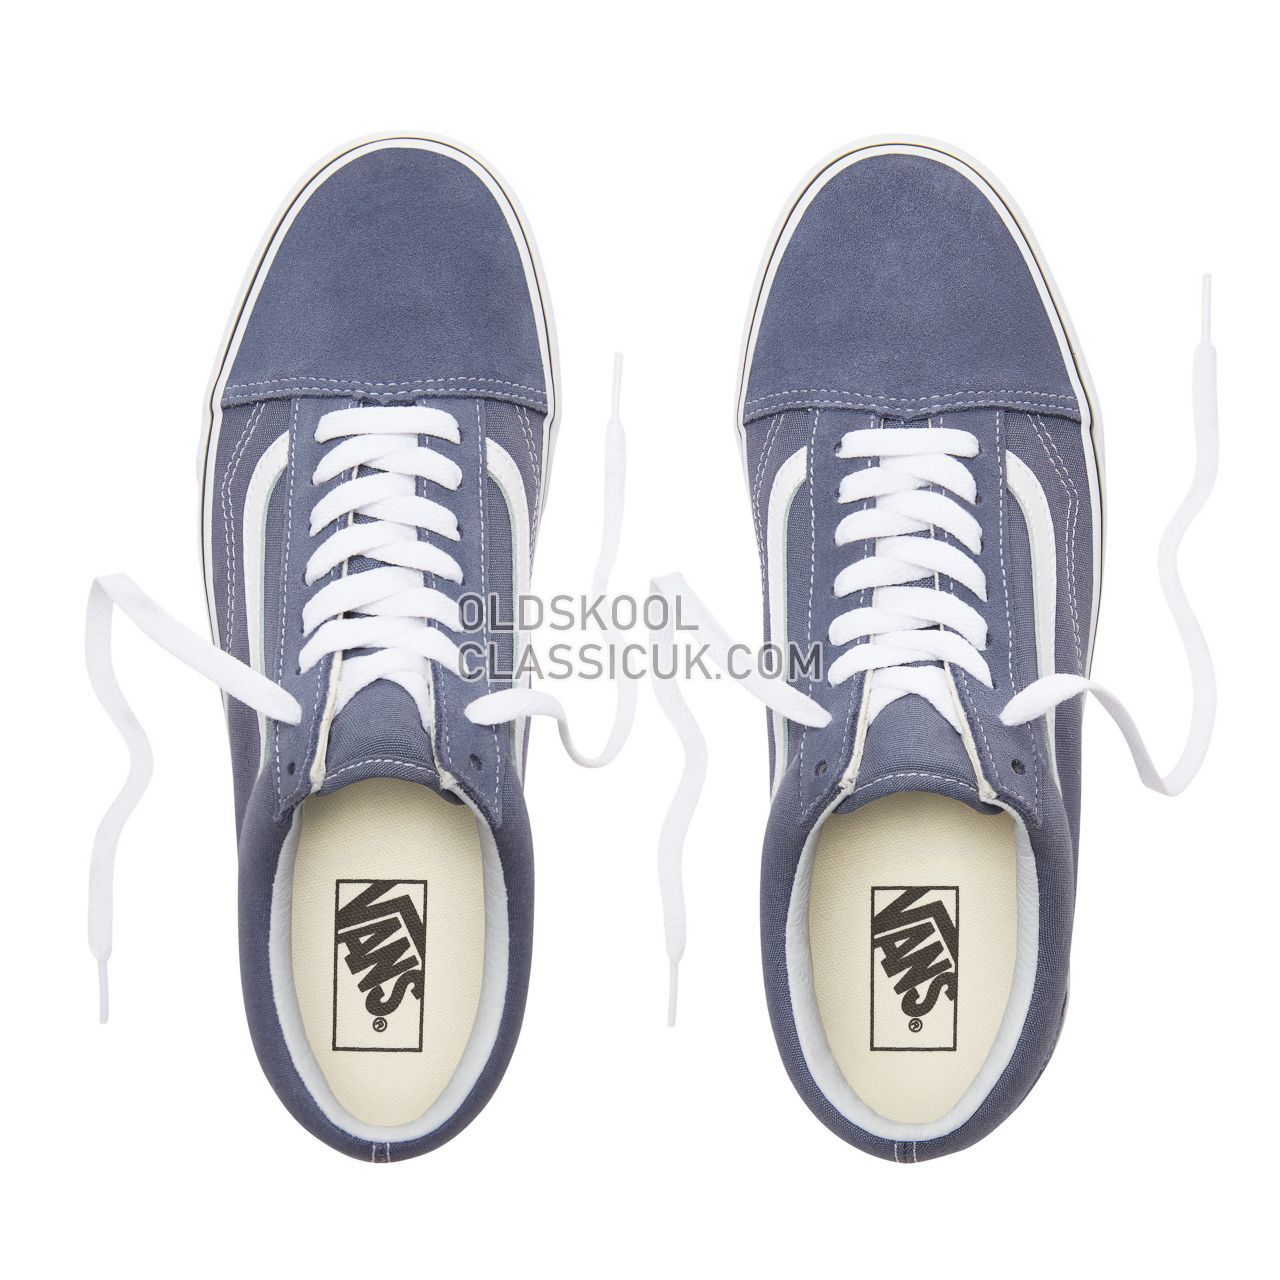 Vans Old Skool Sneakers Mens Womens Unisex Grisaille/True White VN0A38G1UKY Shoes